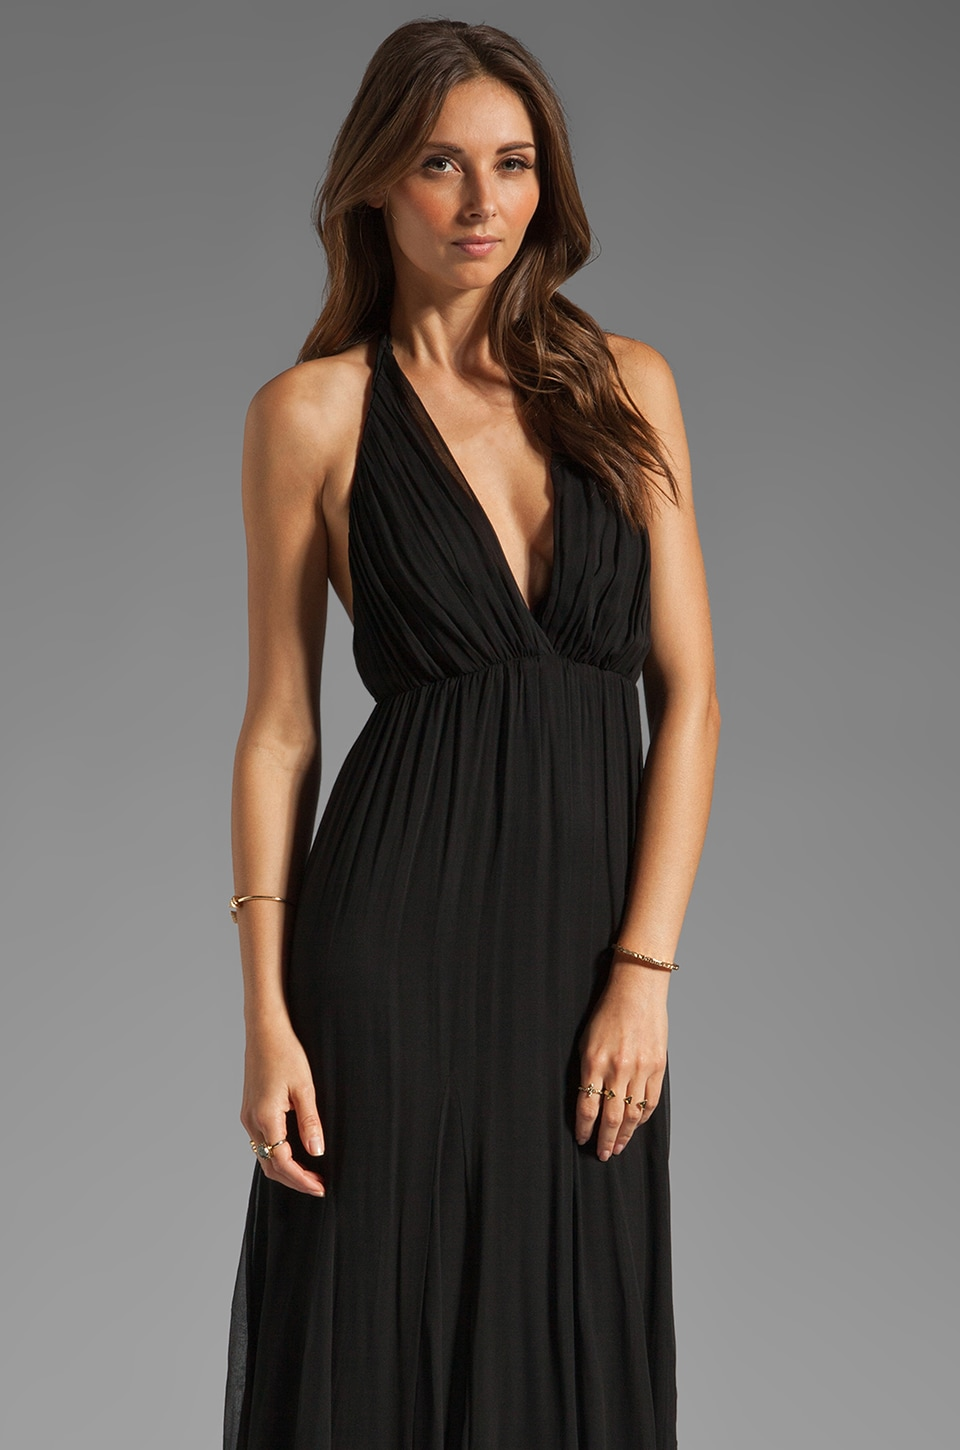 Alice + Olivia Alberta Long Halter Dress in Black